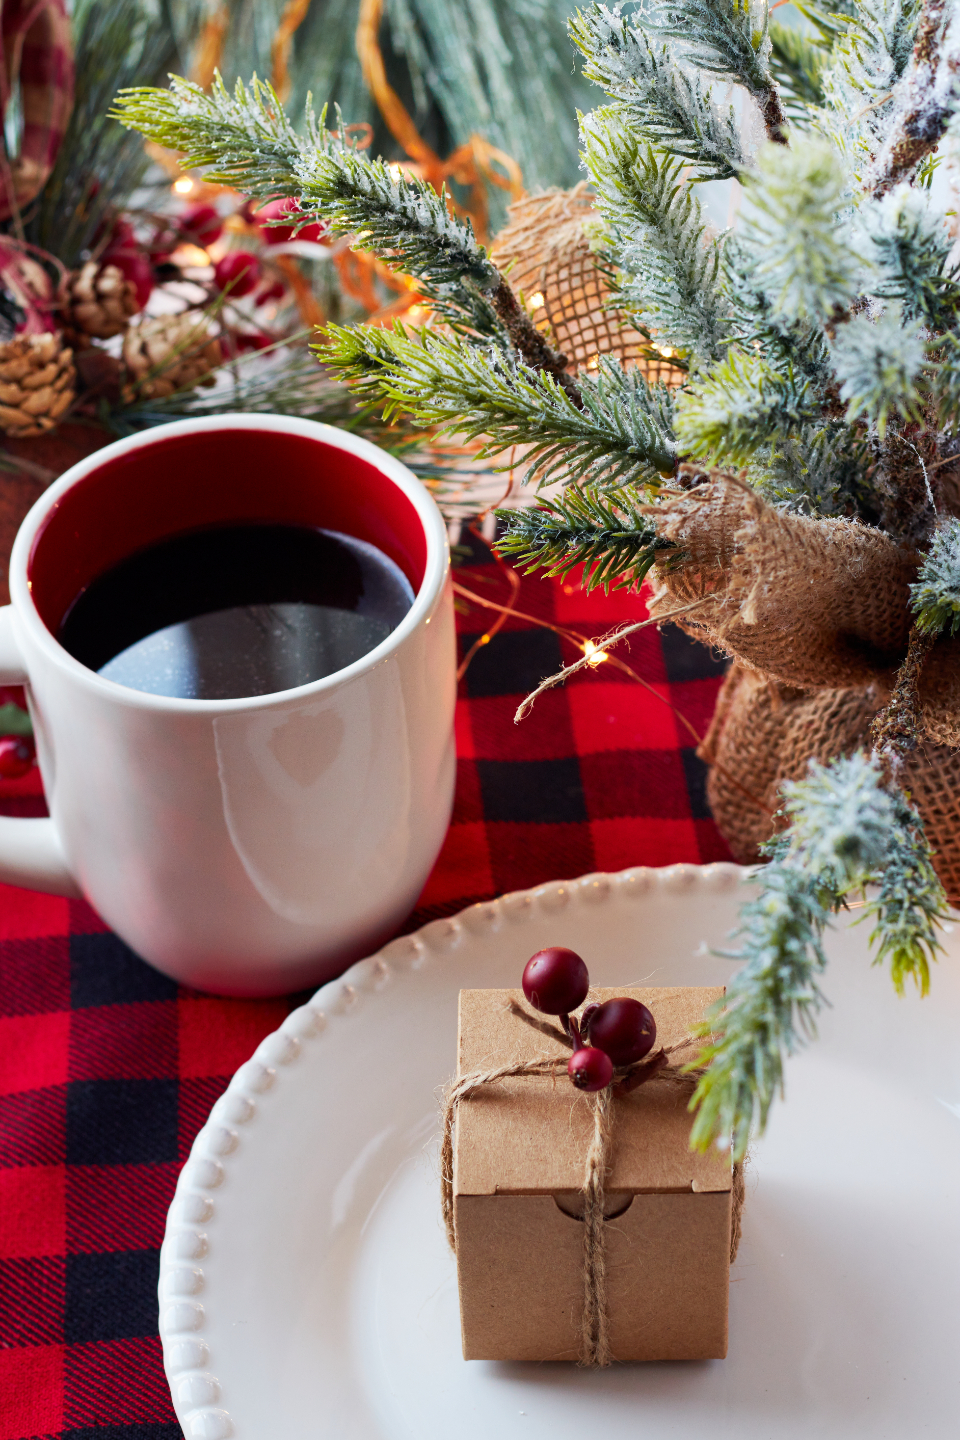 christmas gift box coffee festive plate holiday plaid pine branch xmas seasonal food cup mug beverage